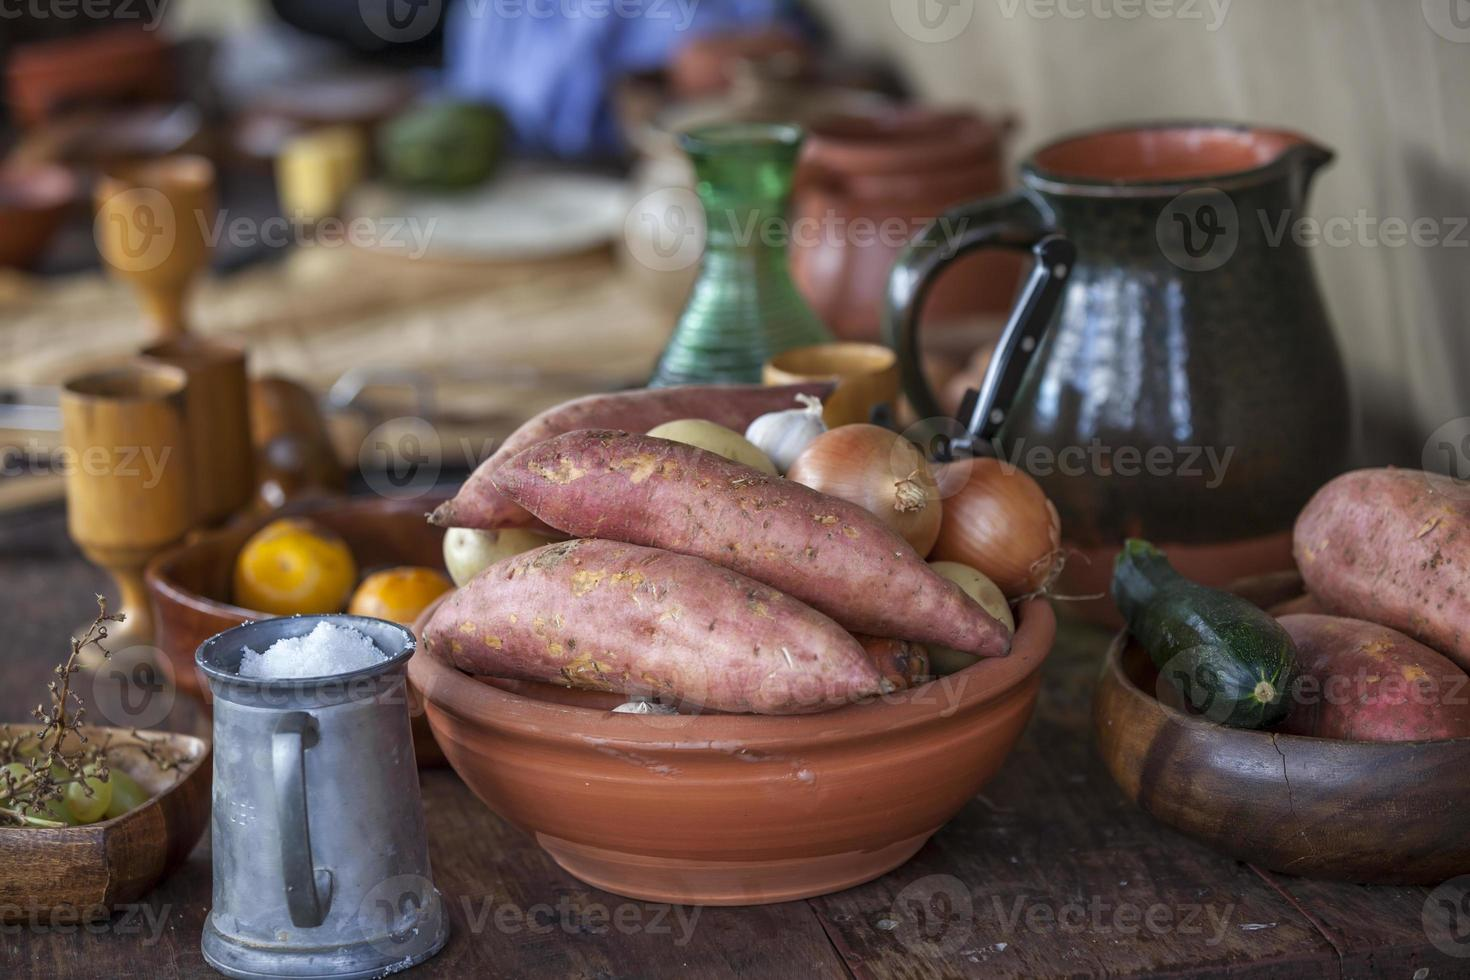 Rustic garden vegetables with old fashioned crockery photo